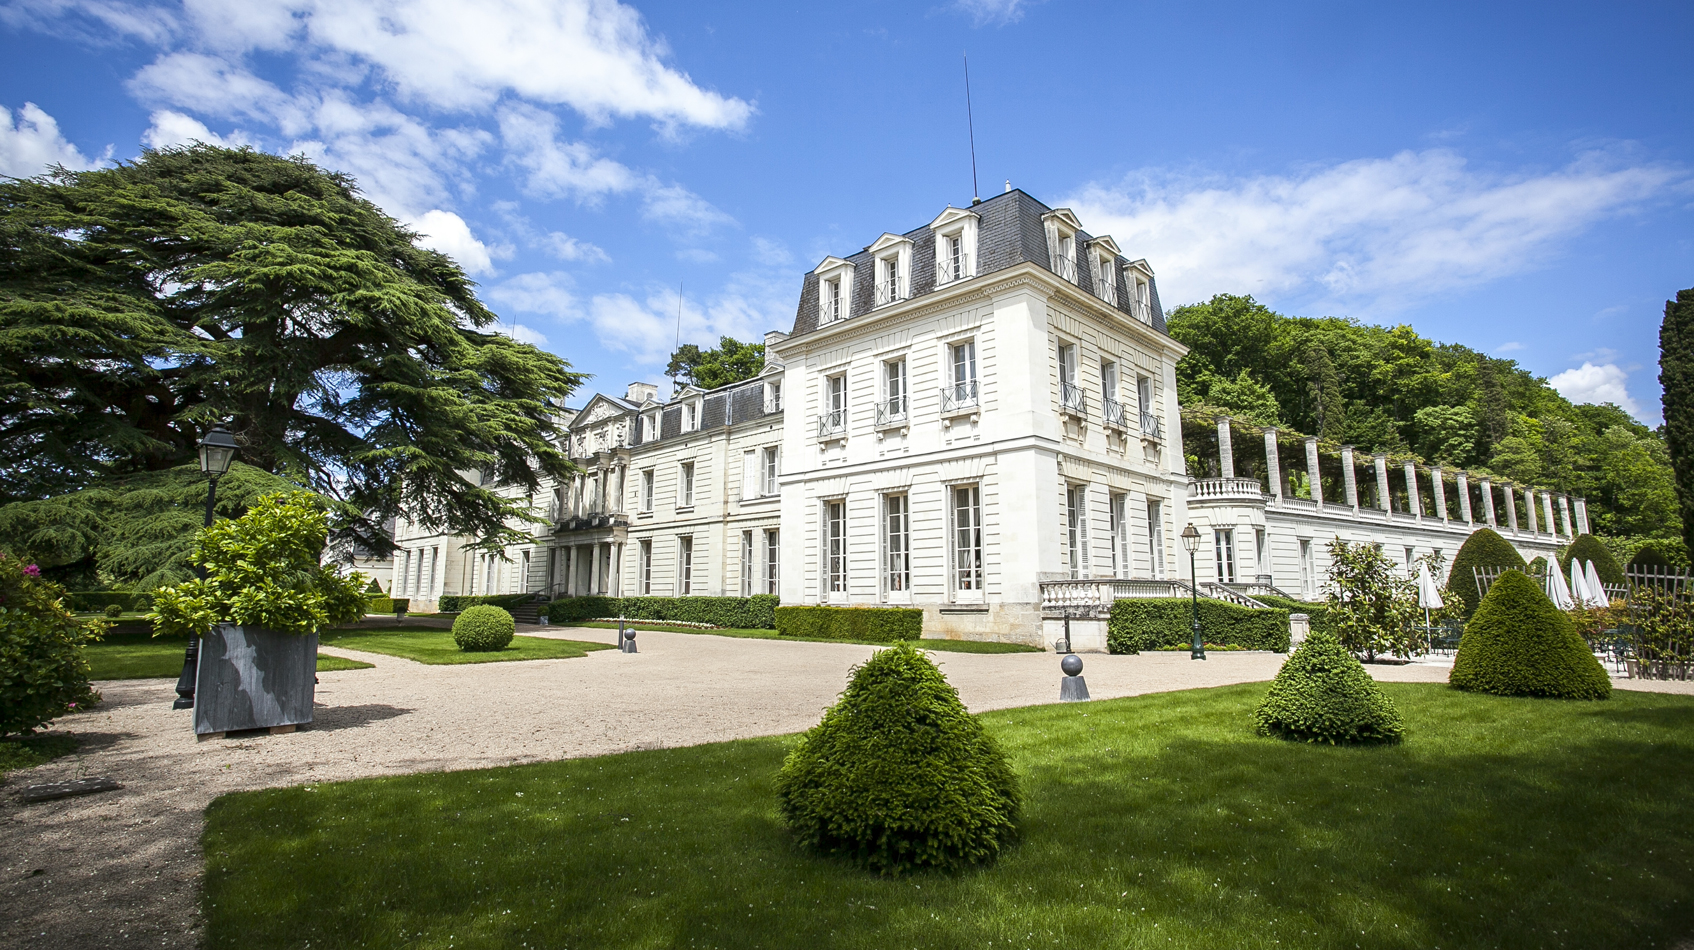 King of the Castle: An insider's guide to Chateau de Rochette